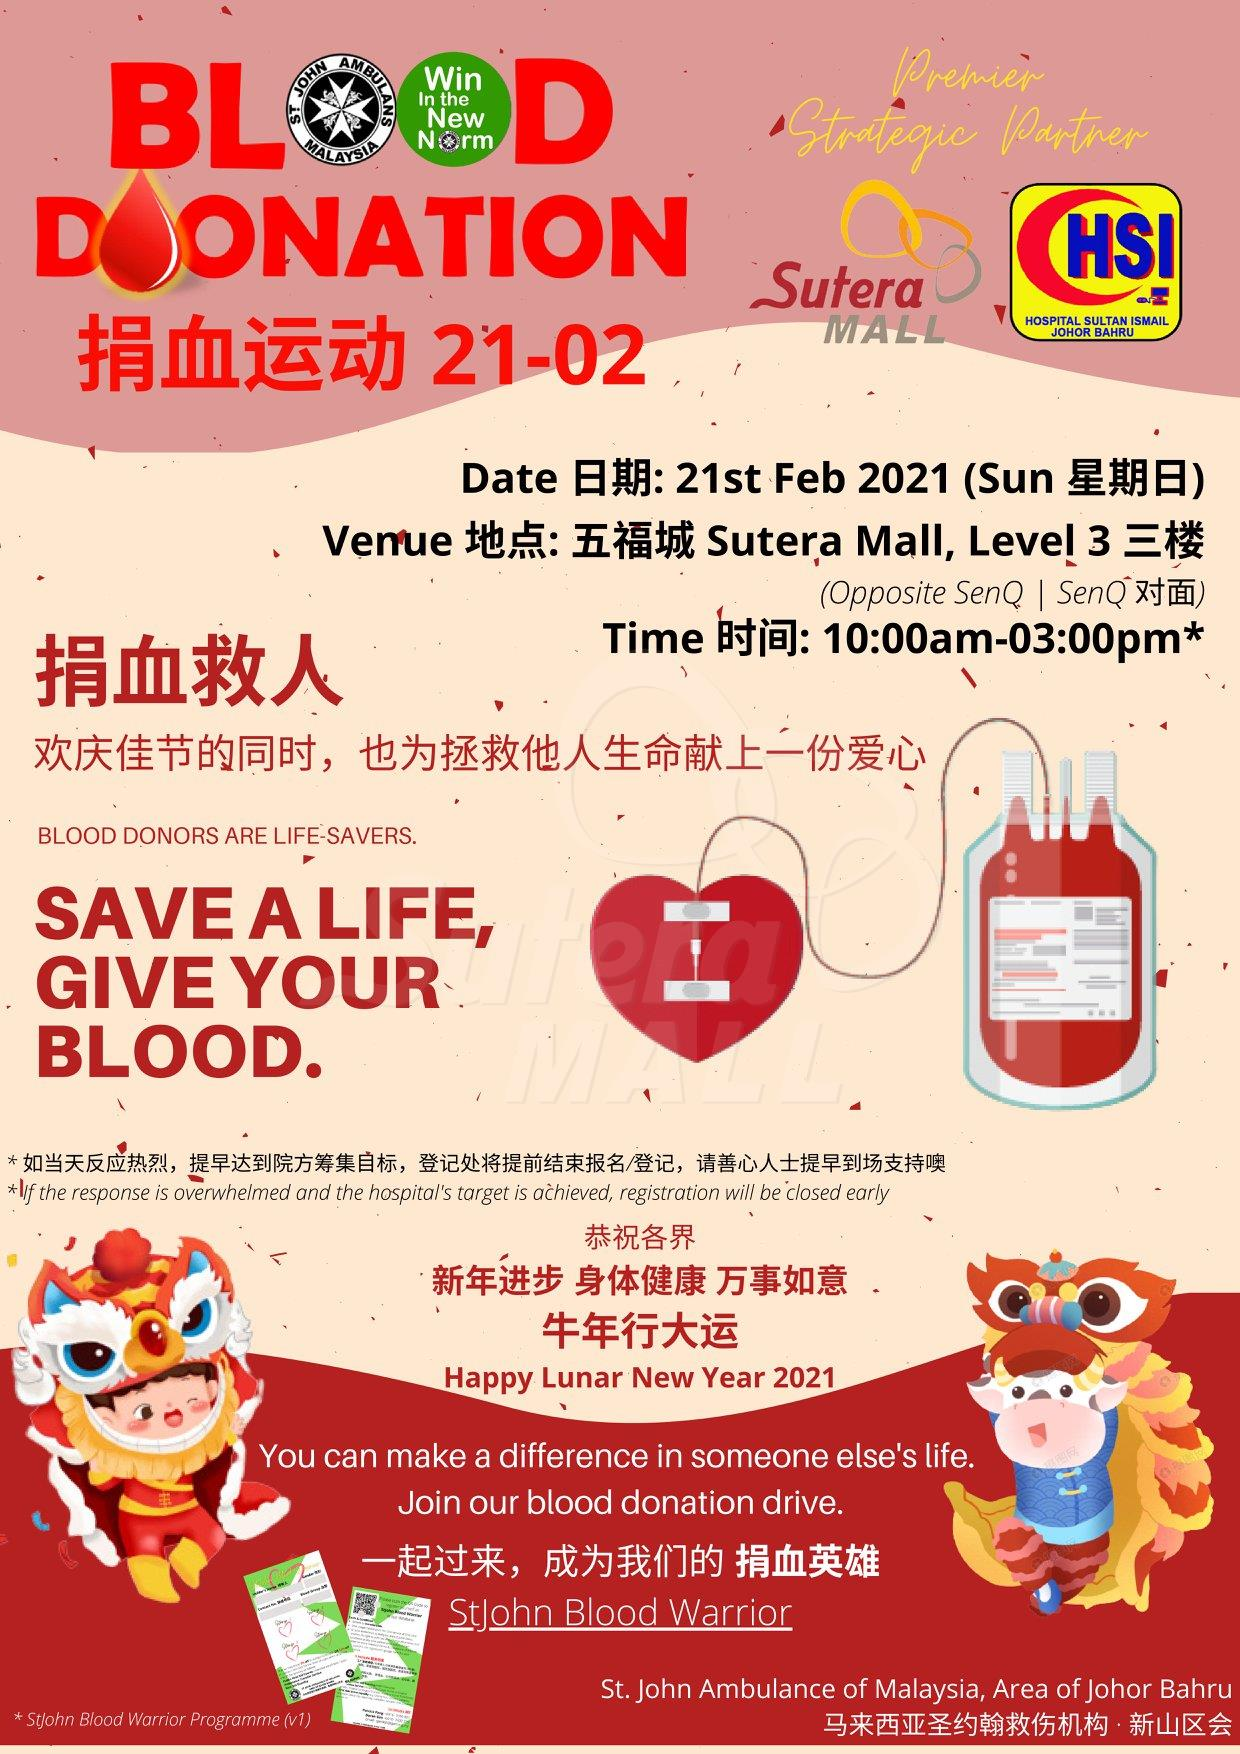 <div class='event-date'>21 Feb 2021</div><div class='event-title'><h4>Blood Donation by St. John Ambulance Malaysia</h4></div>